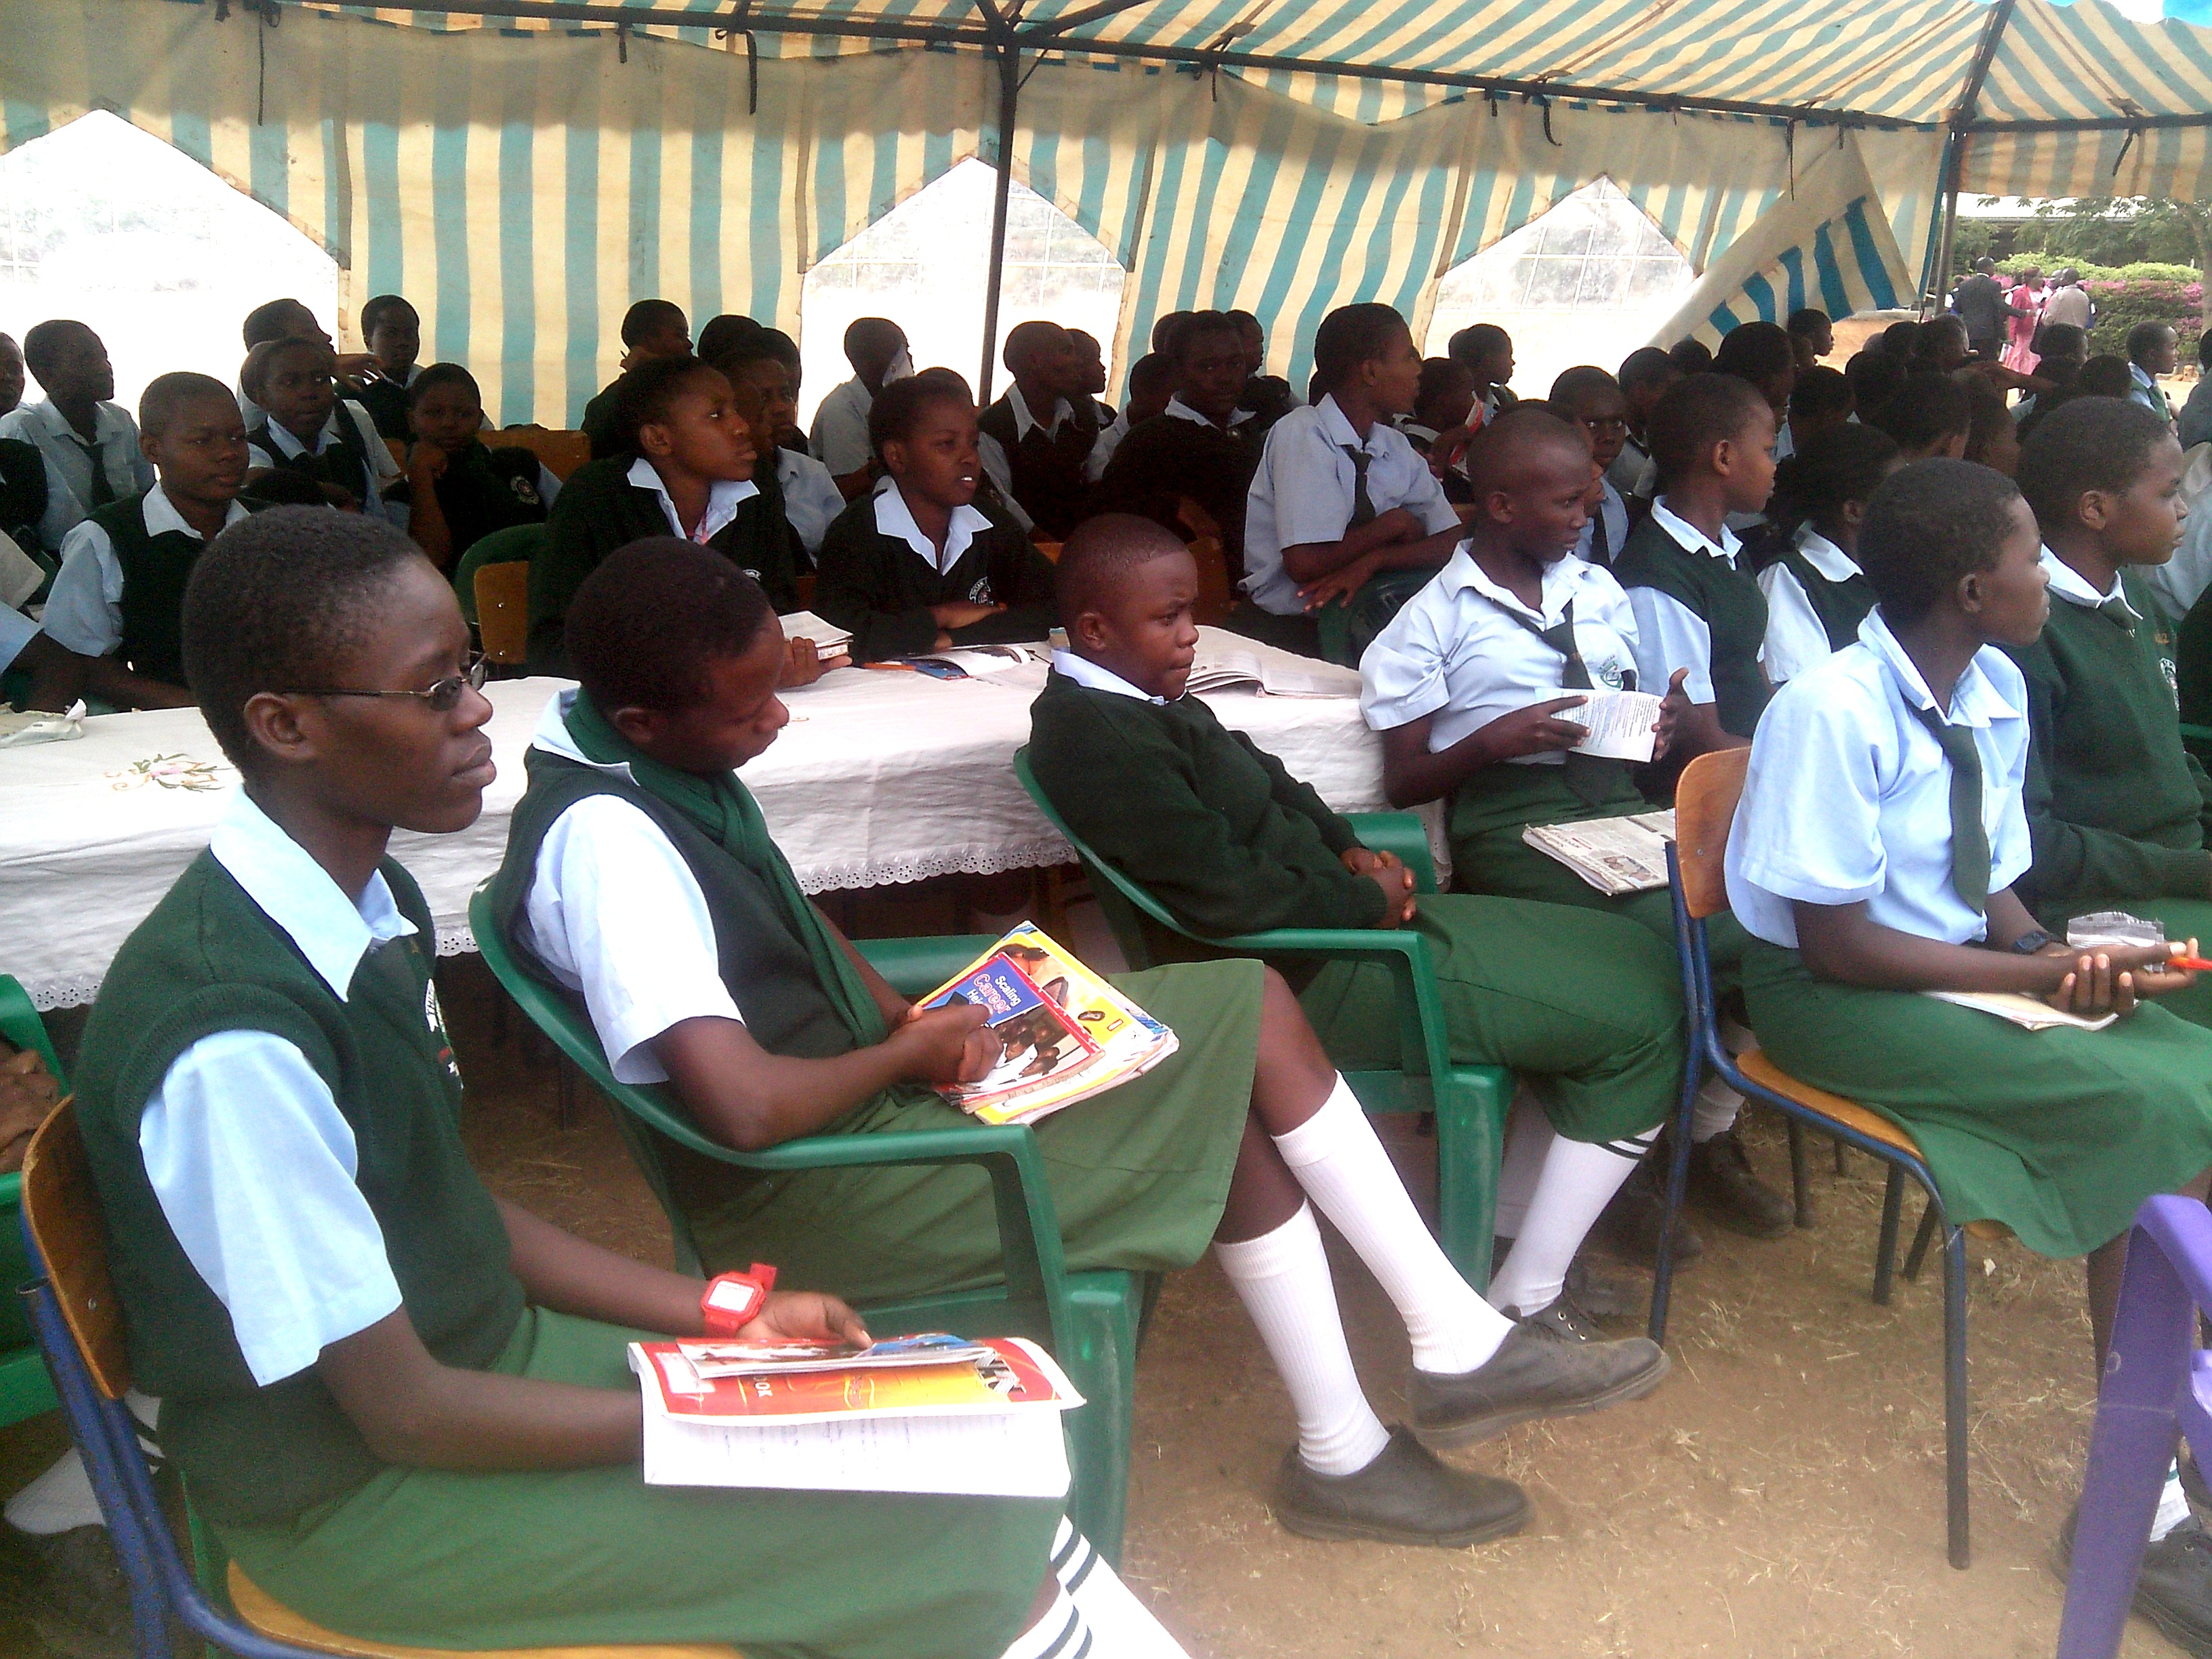 Thitani Girls Secondary school students in Kitui county follow speeches during a recent career day in the school